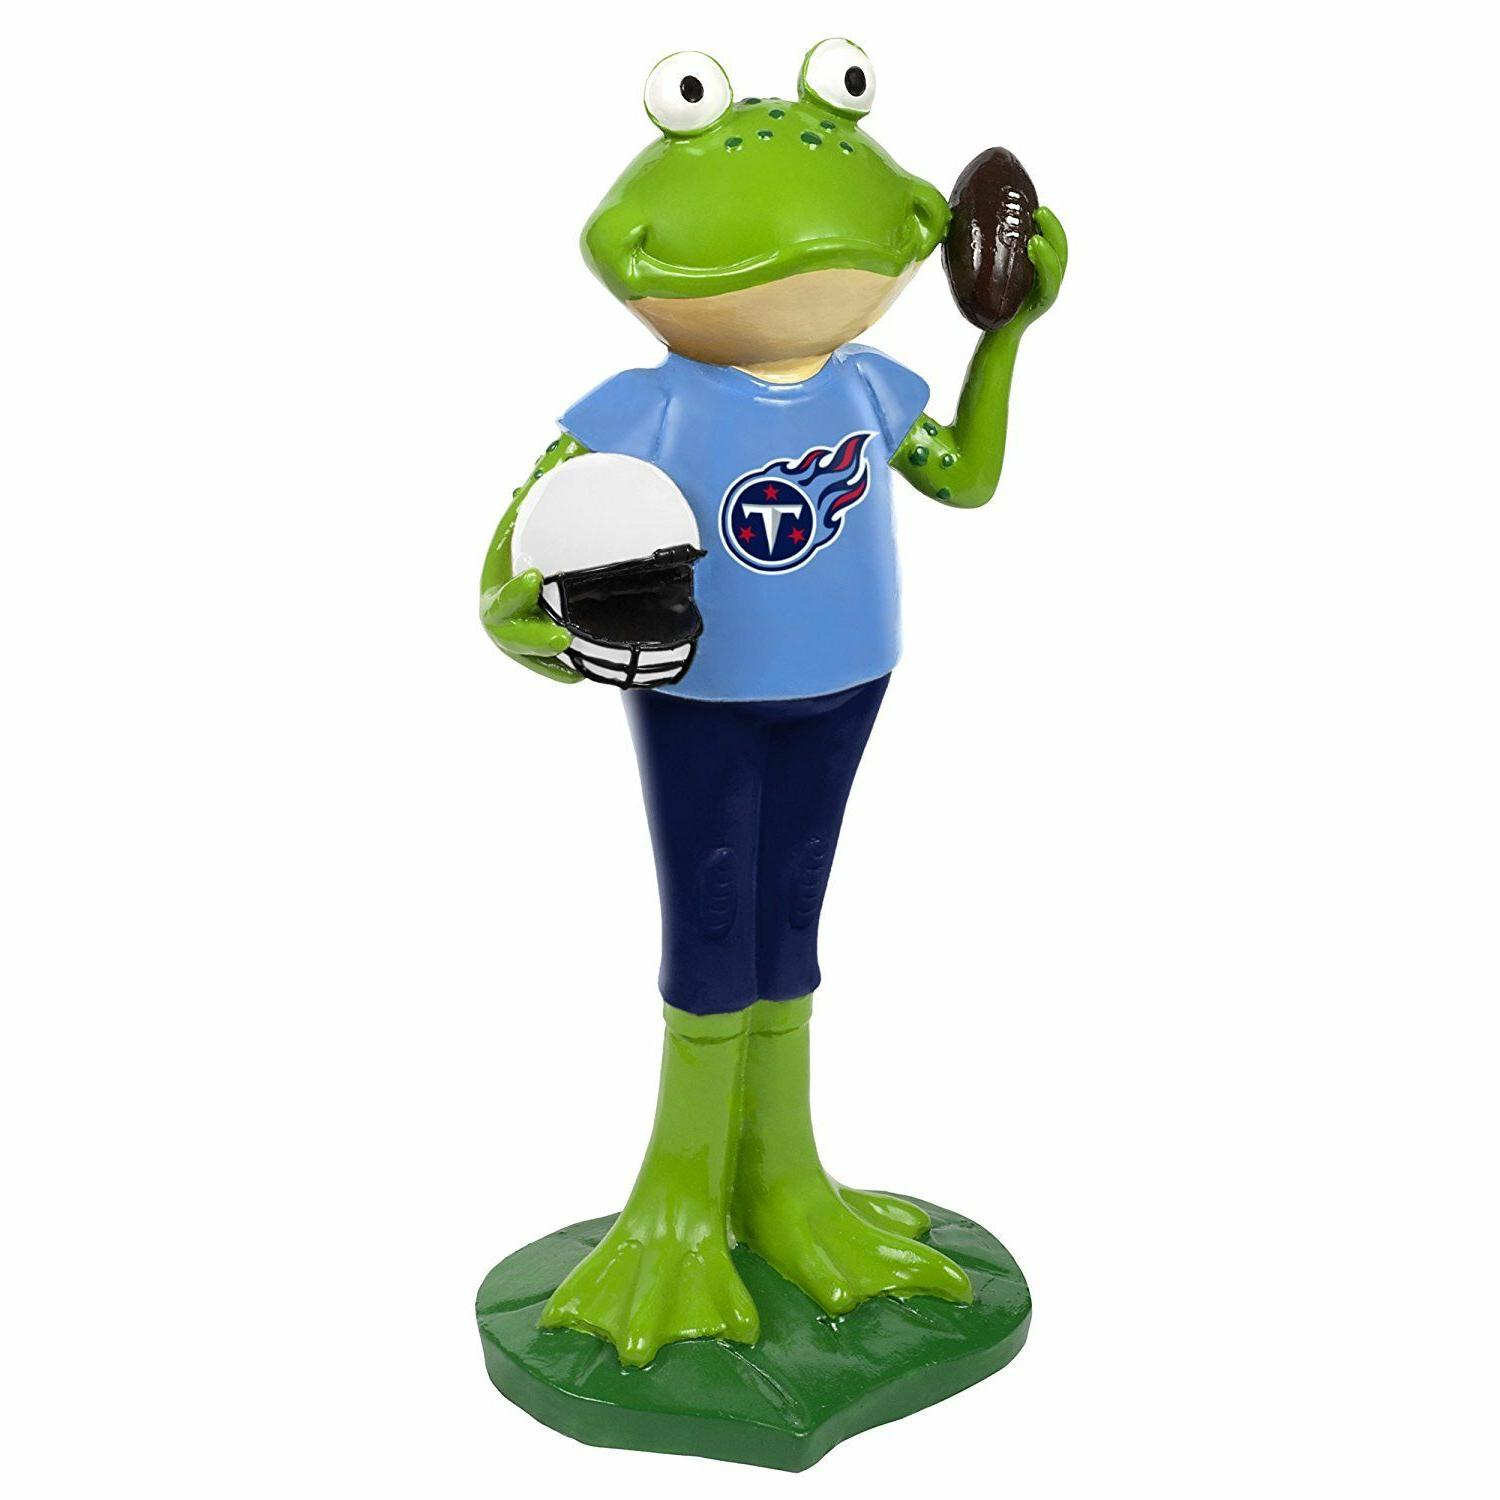 nfl tennessee titans frog player figurine